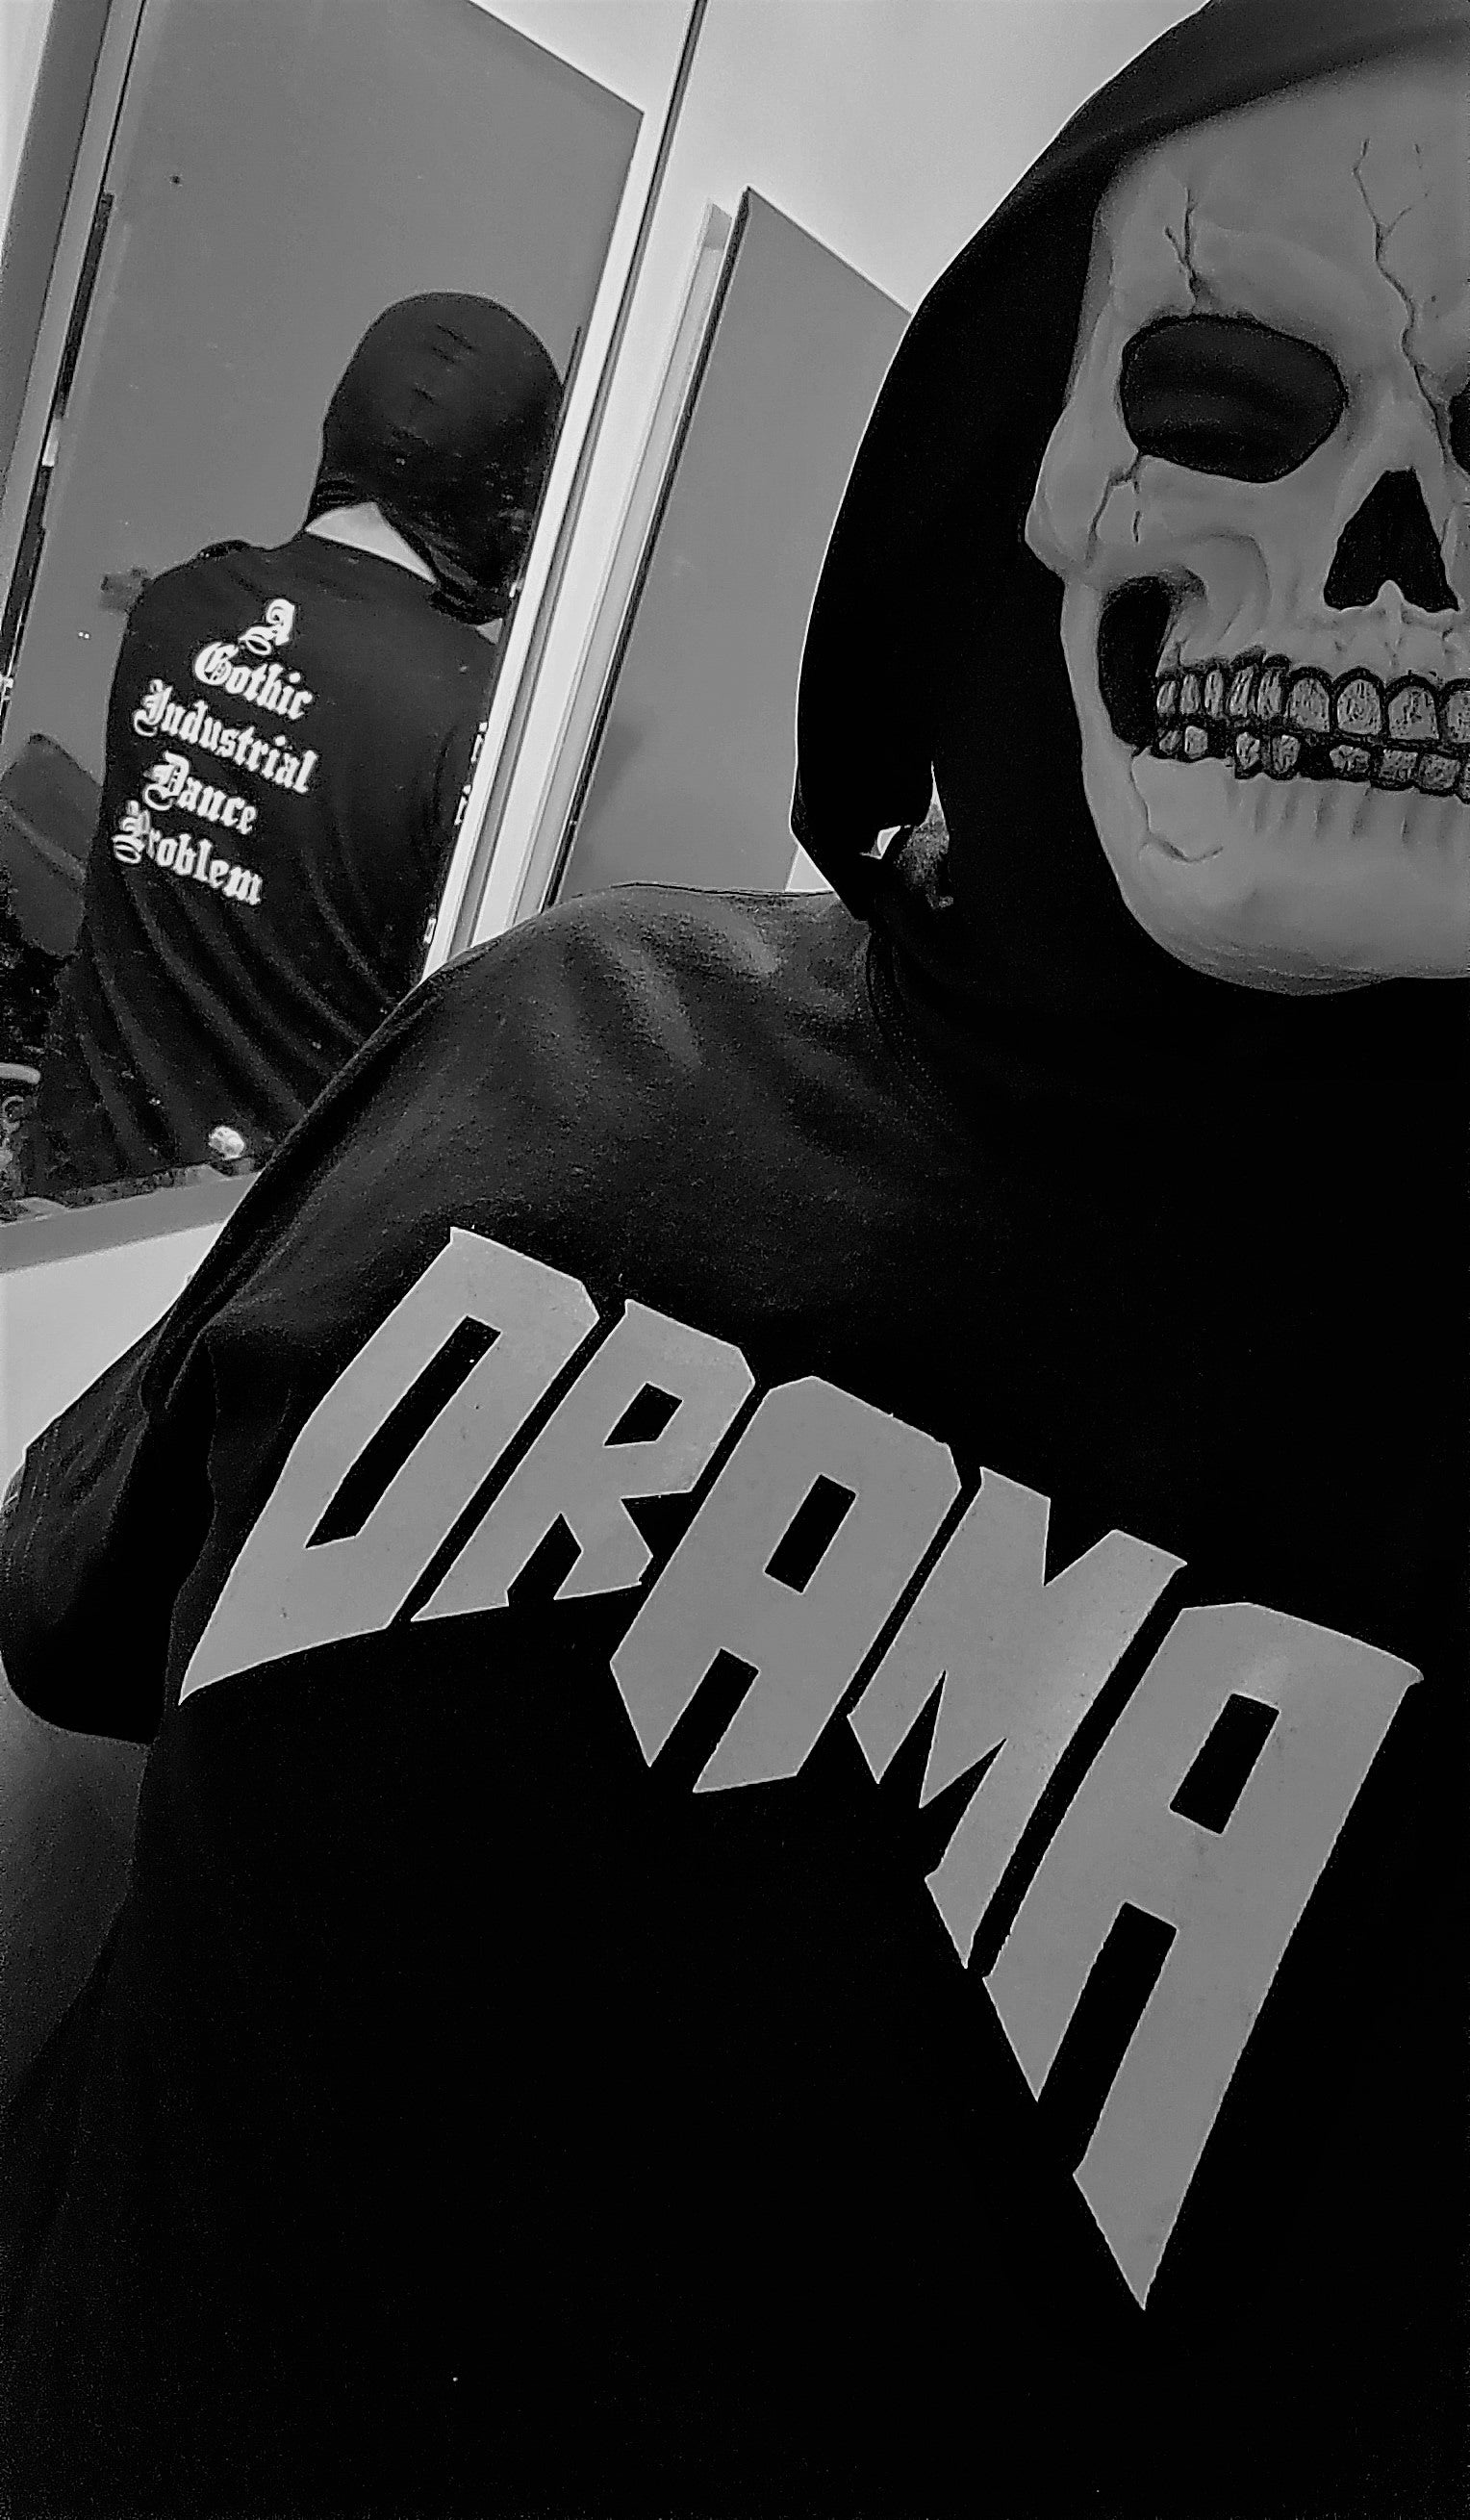 The Official DRAMA shirt!  Buy one today at MINDJACKET.COM!